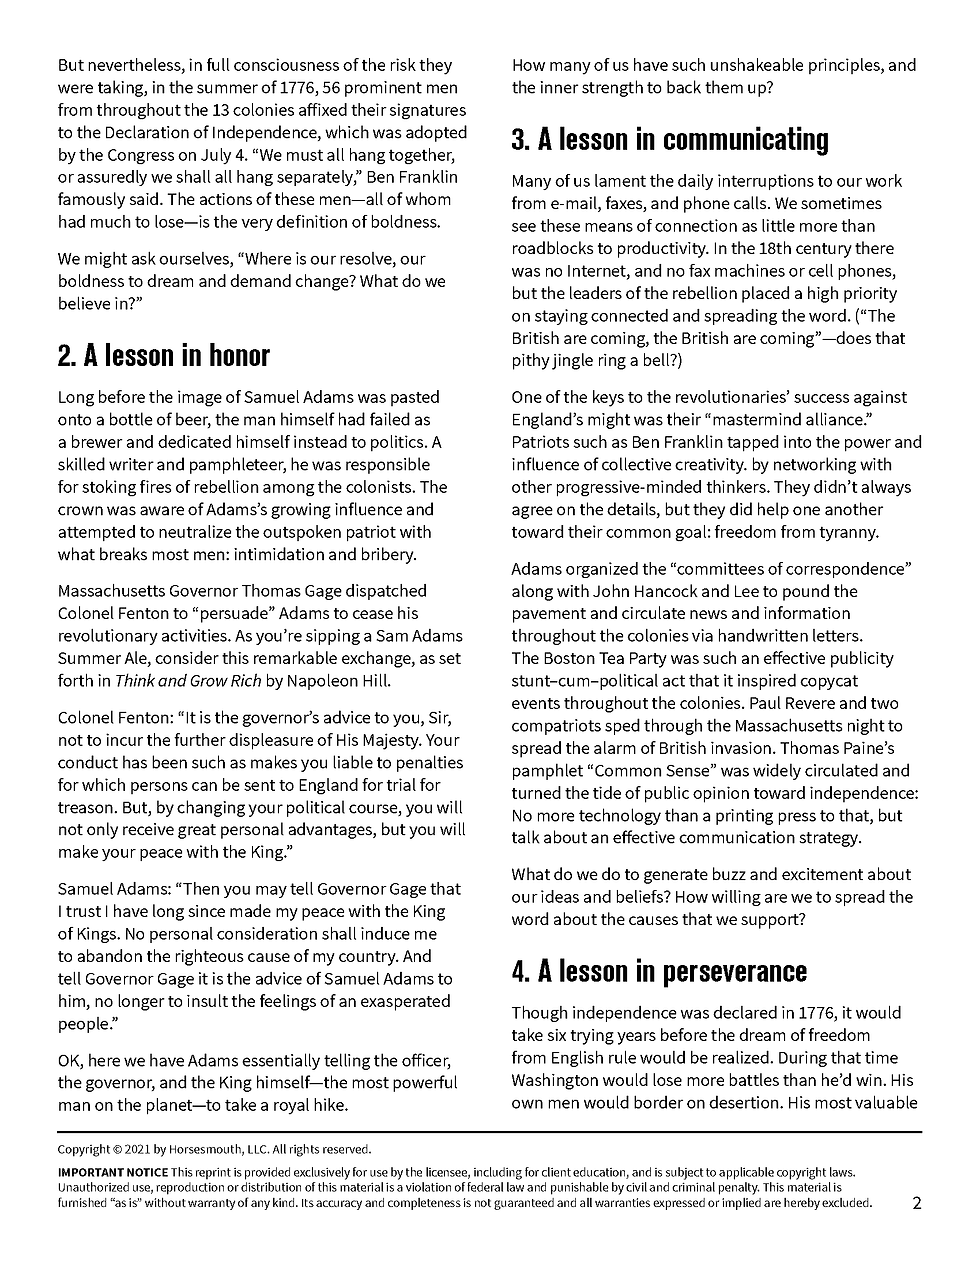 7 Lessons From the Fourth of July_Page_2